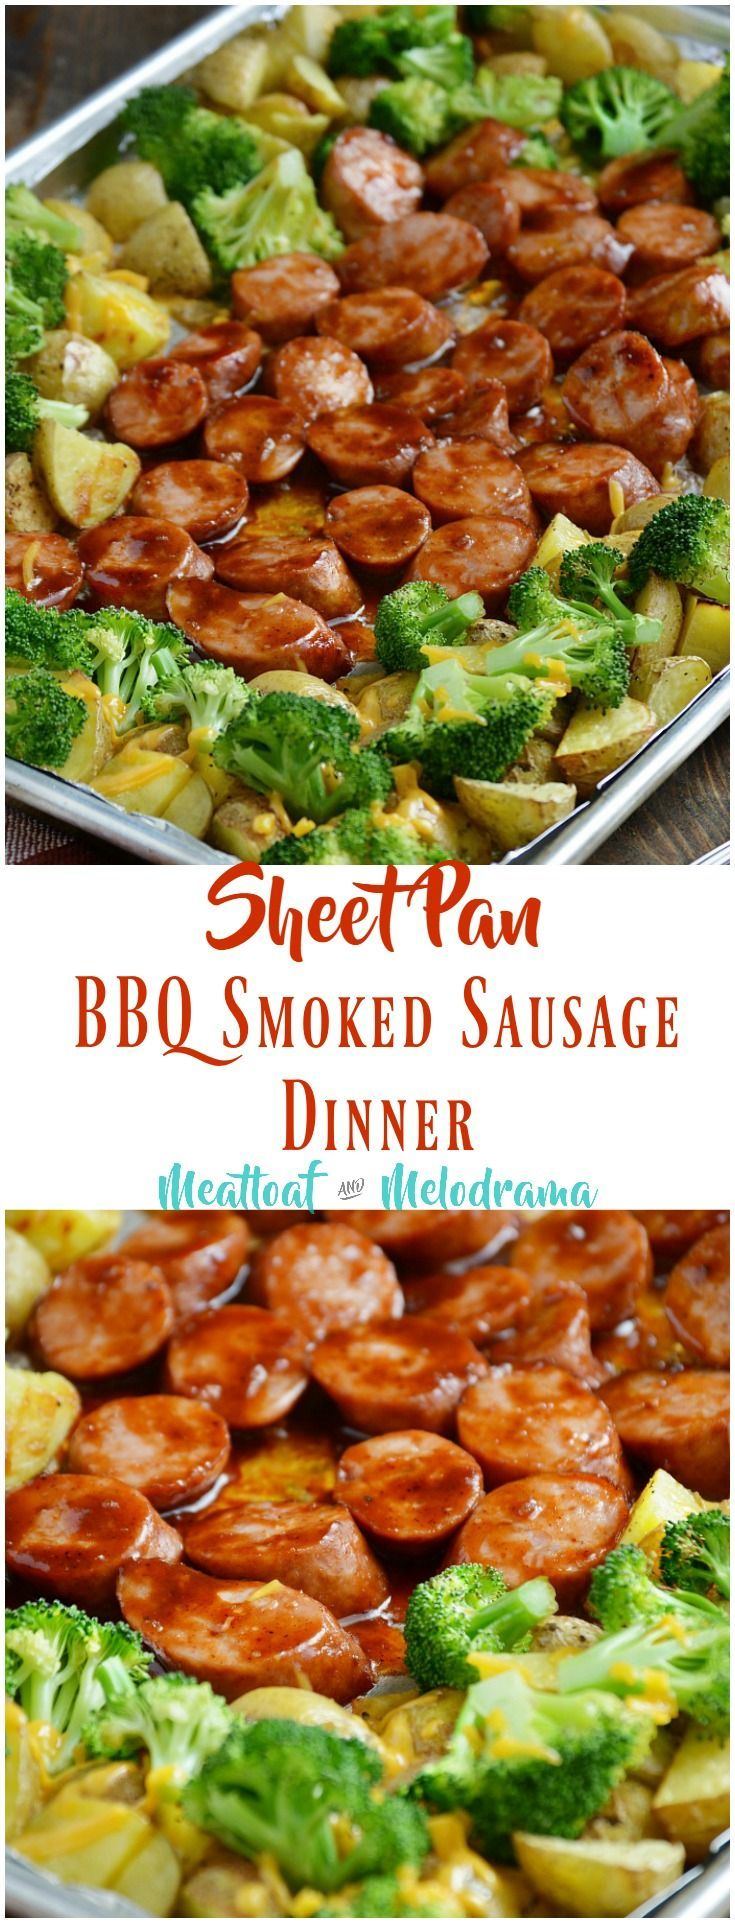 Photo of Sheet Pan BBQ Smoked Sausage Dinner – Meatloaf and Melodrama